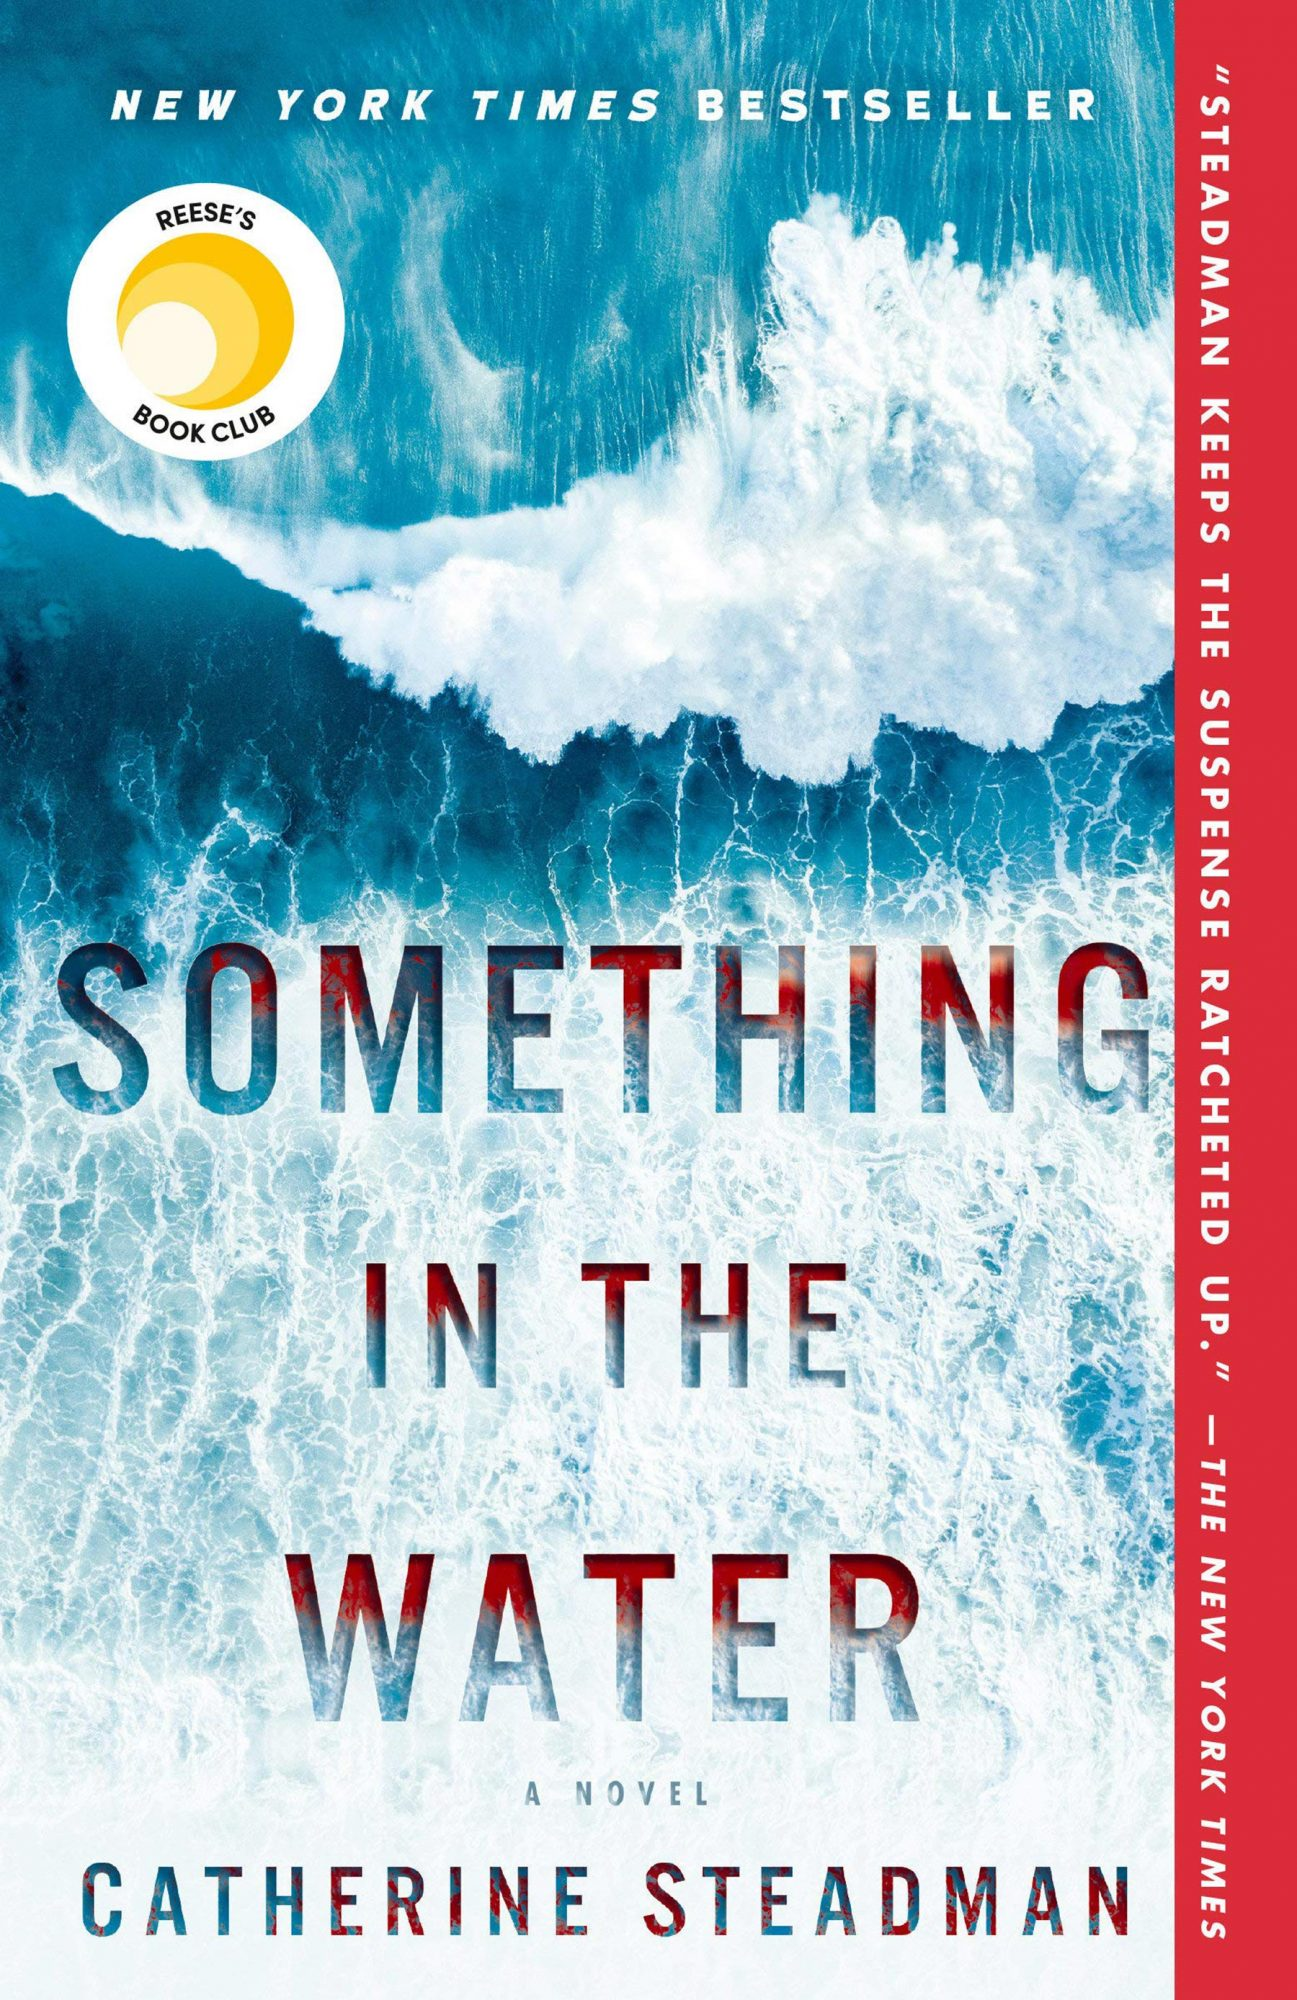 Something in the Water, by Catherine Steadman